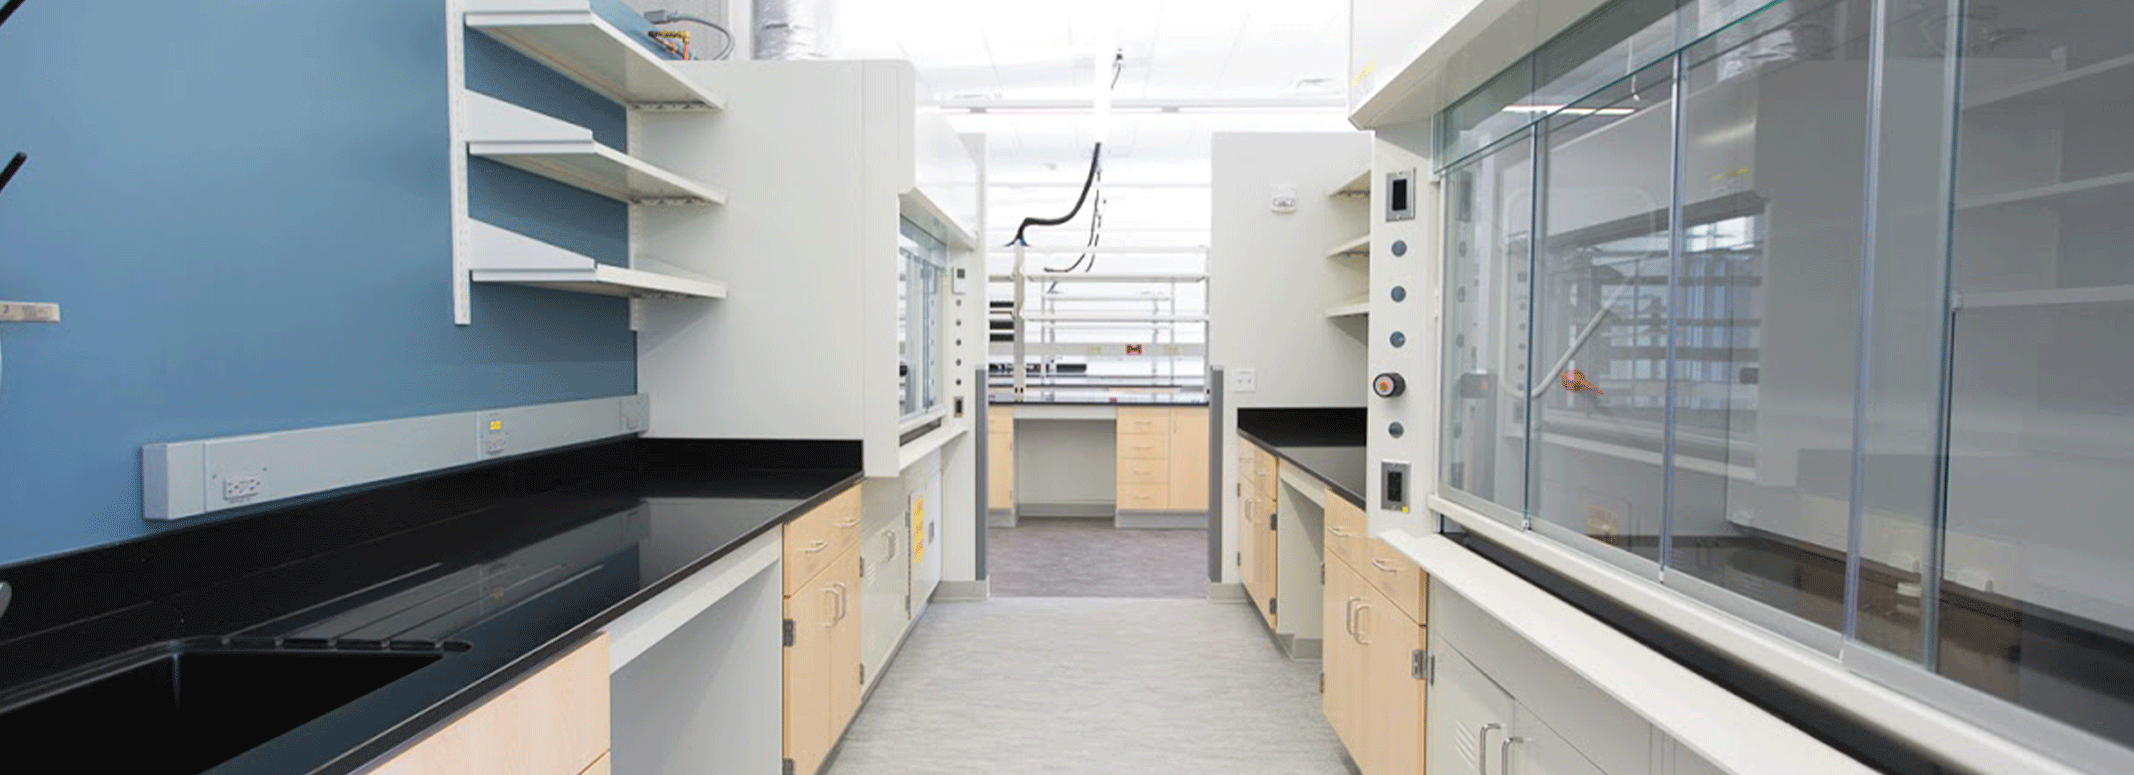 35 North Provides Construction and Project Management Services to Syngenta's Laboratory Renovations in Durham, NC